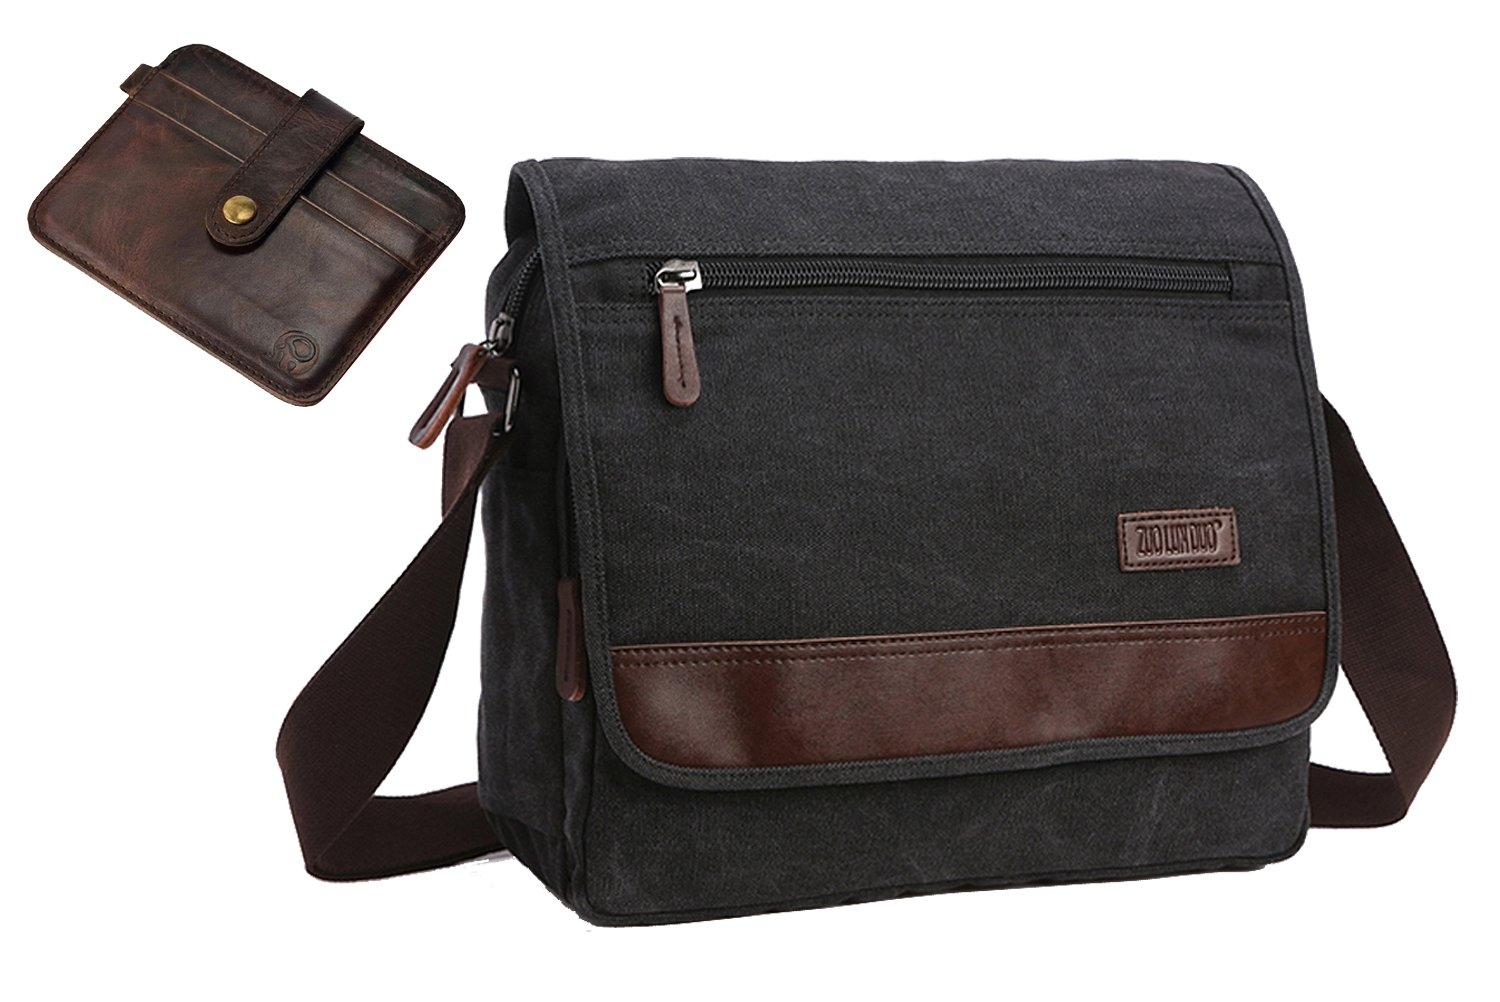 AIBAG Canvas Messenger Bag | Premium Quality Crossbody Bag | Includes BONUS Slim Wallet